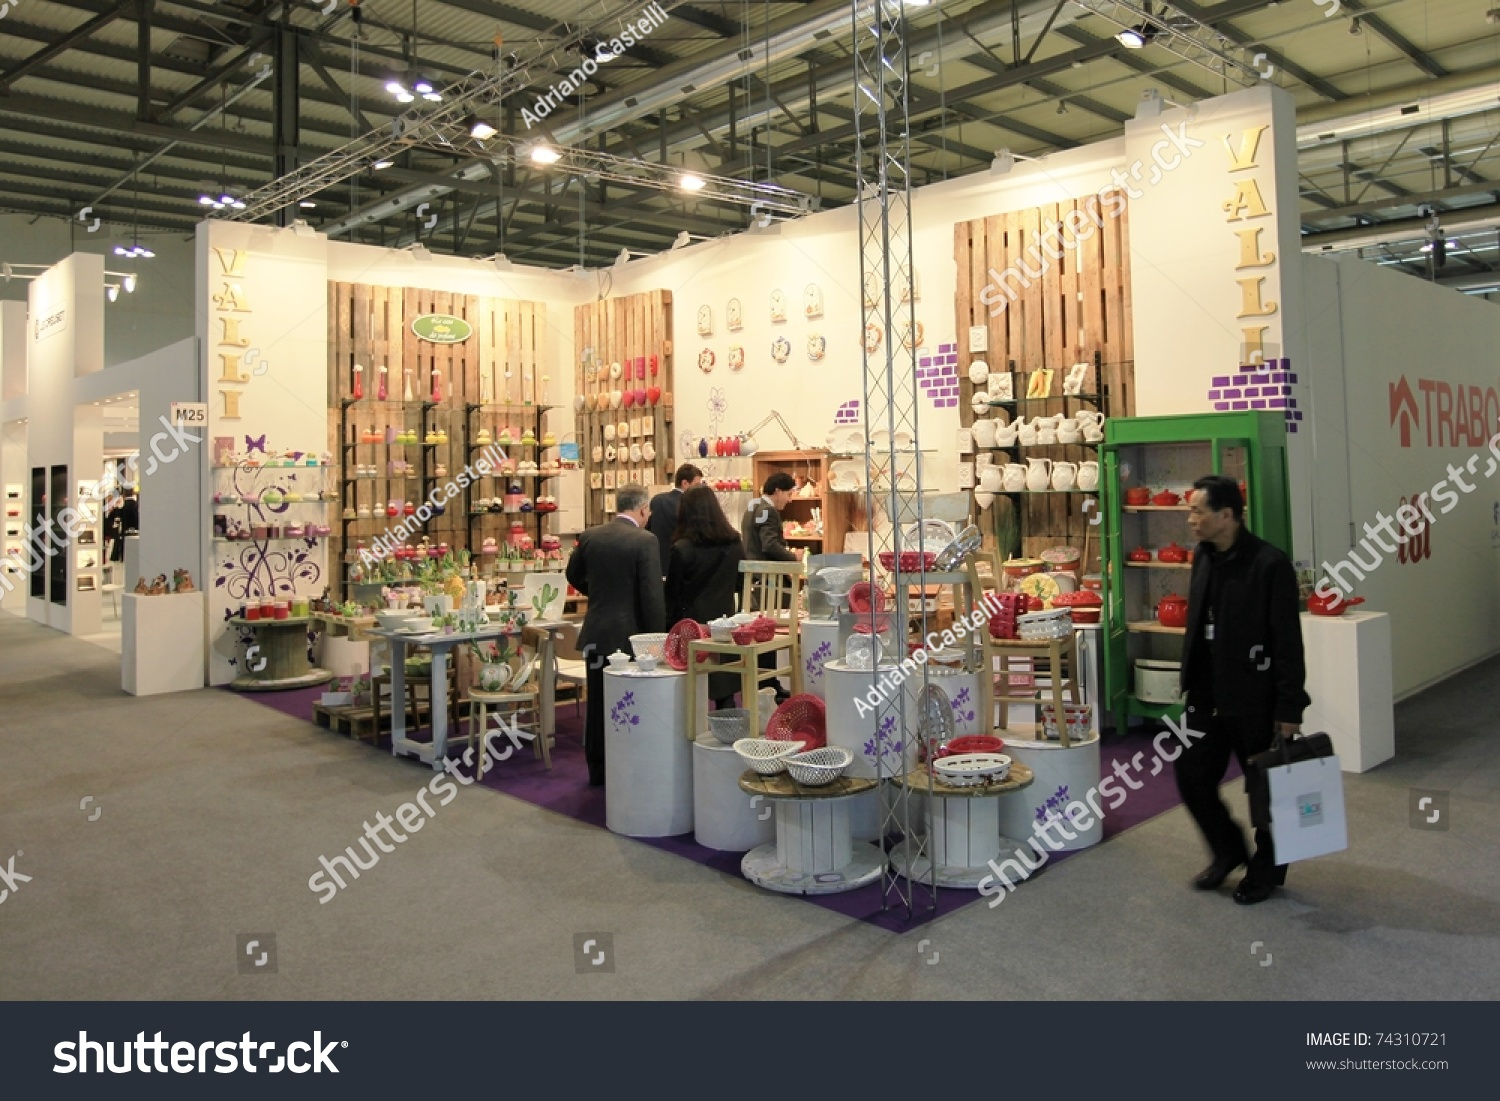 Milan italy january 28 people visit stock photo 74310721 shutterstock for International interior design exhibition